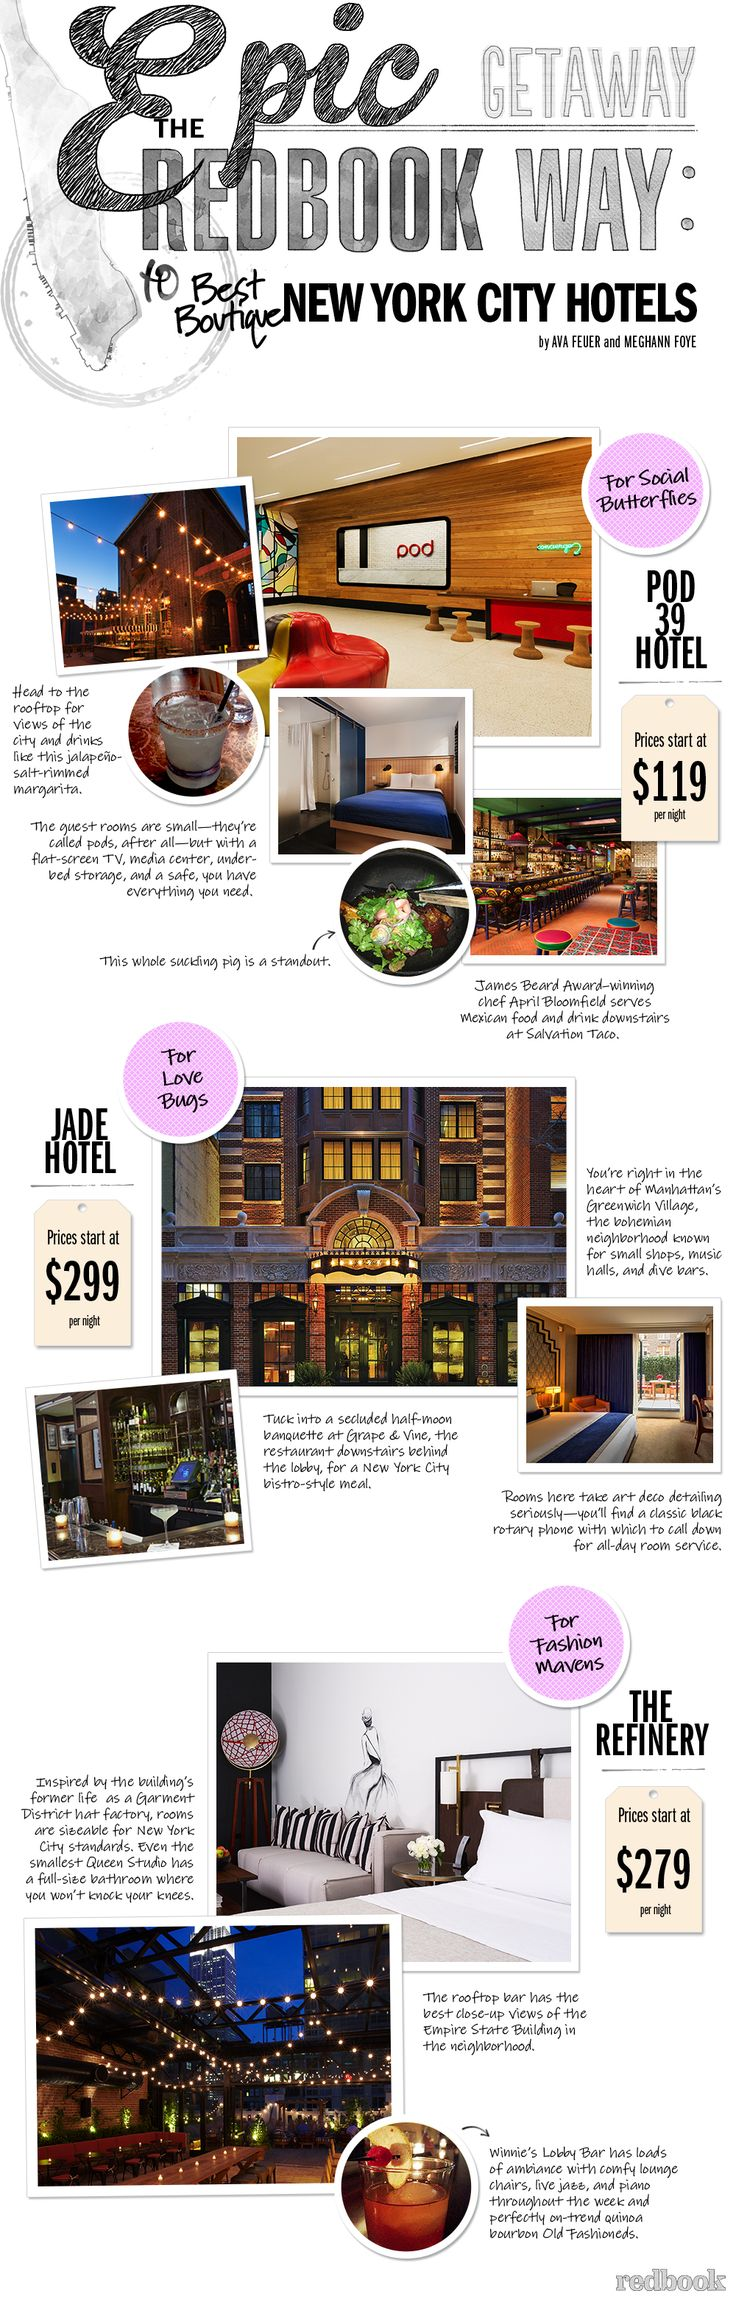 Affordable NYC hotels. You don't have to dip into your savings to have an unforgettable stay.